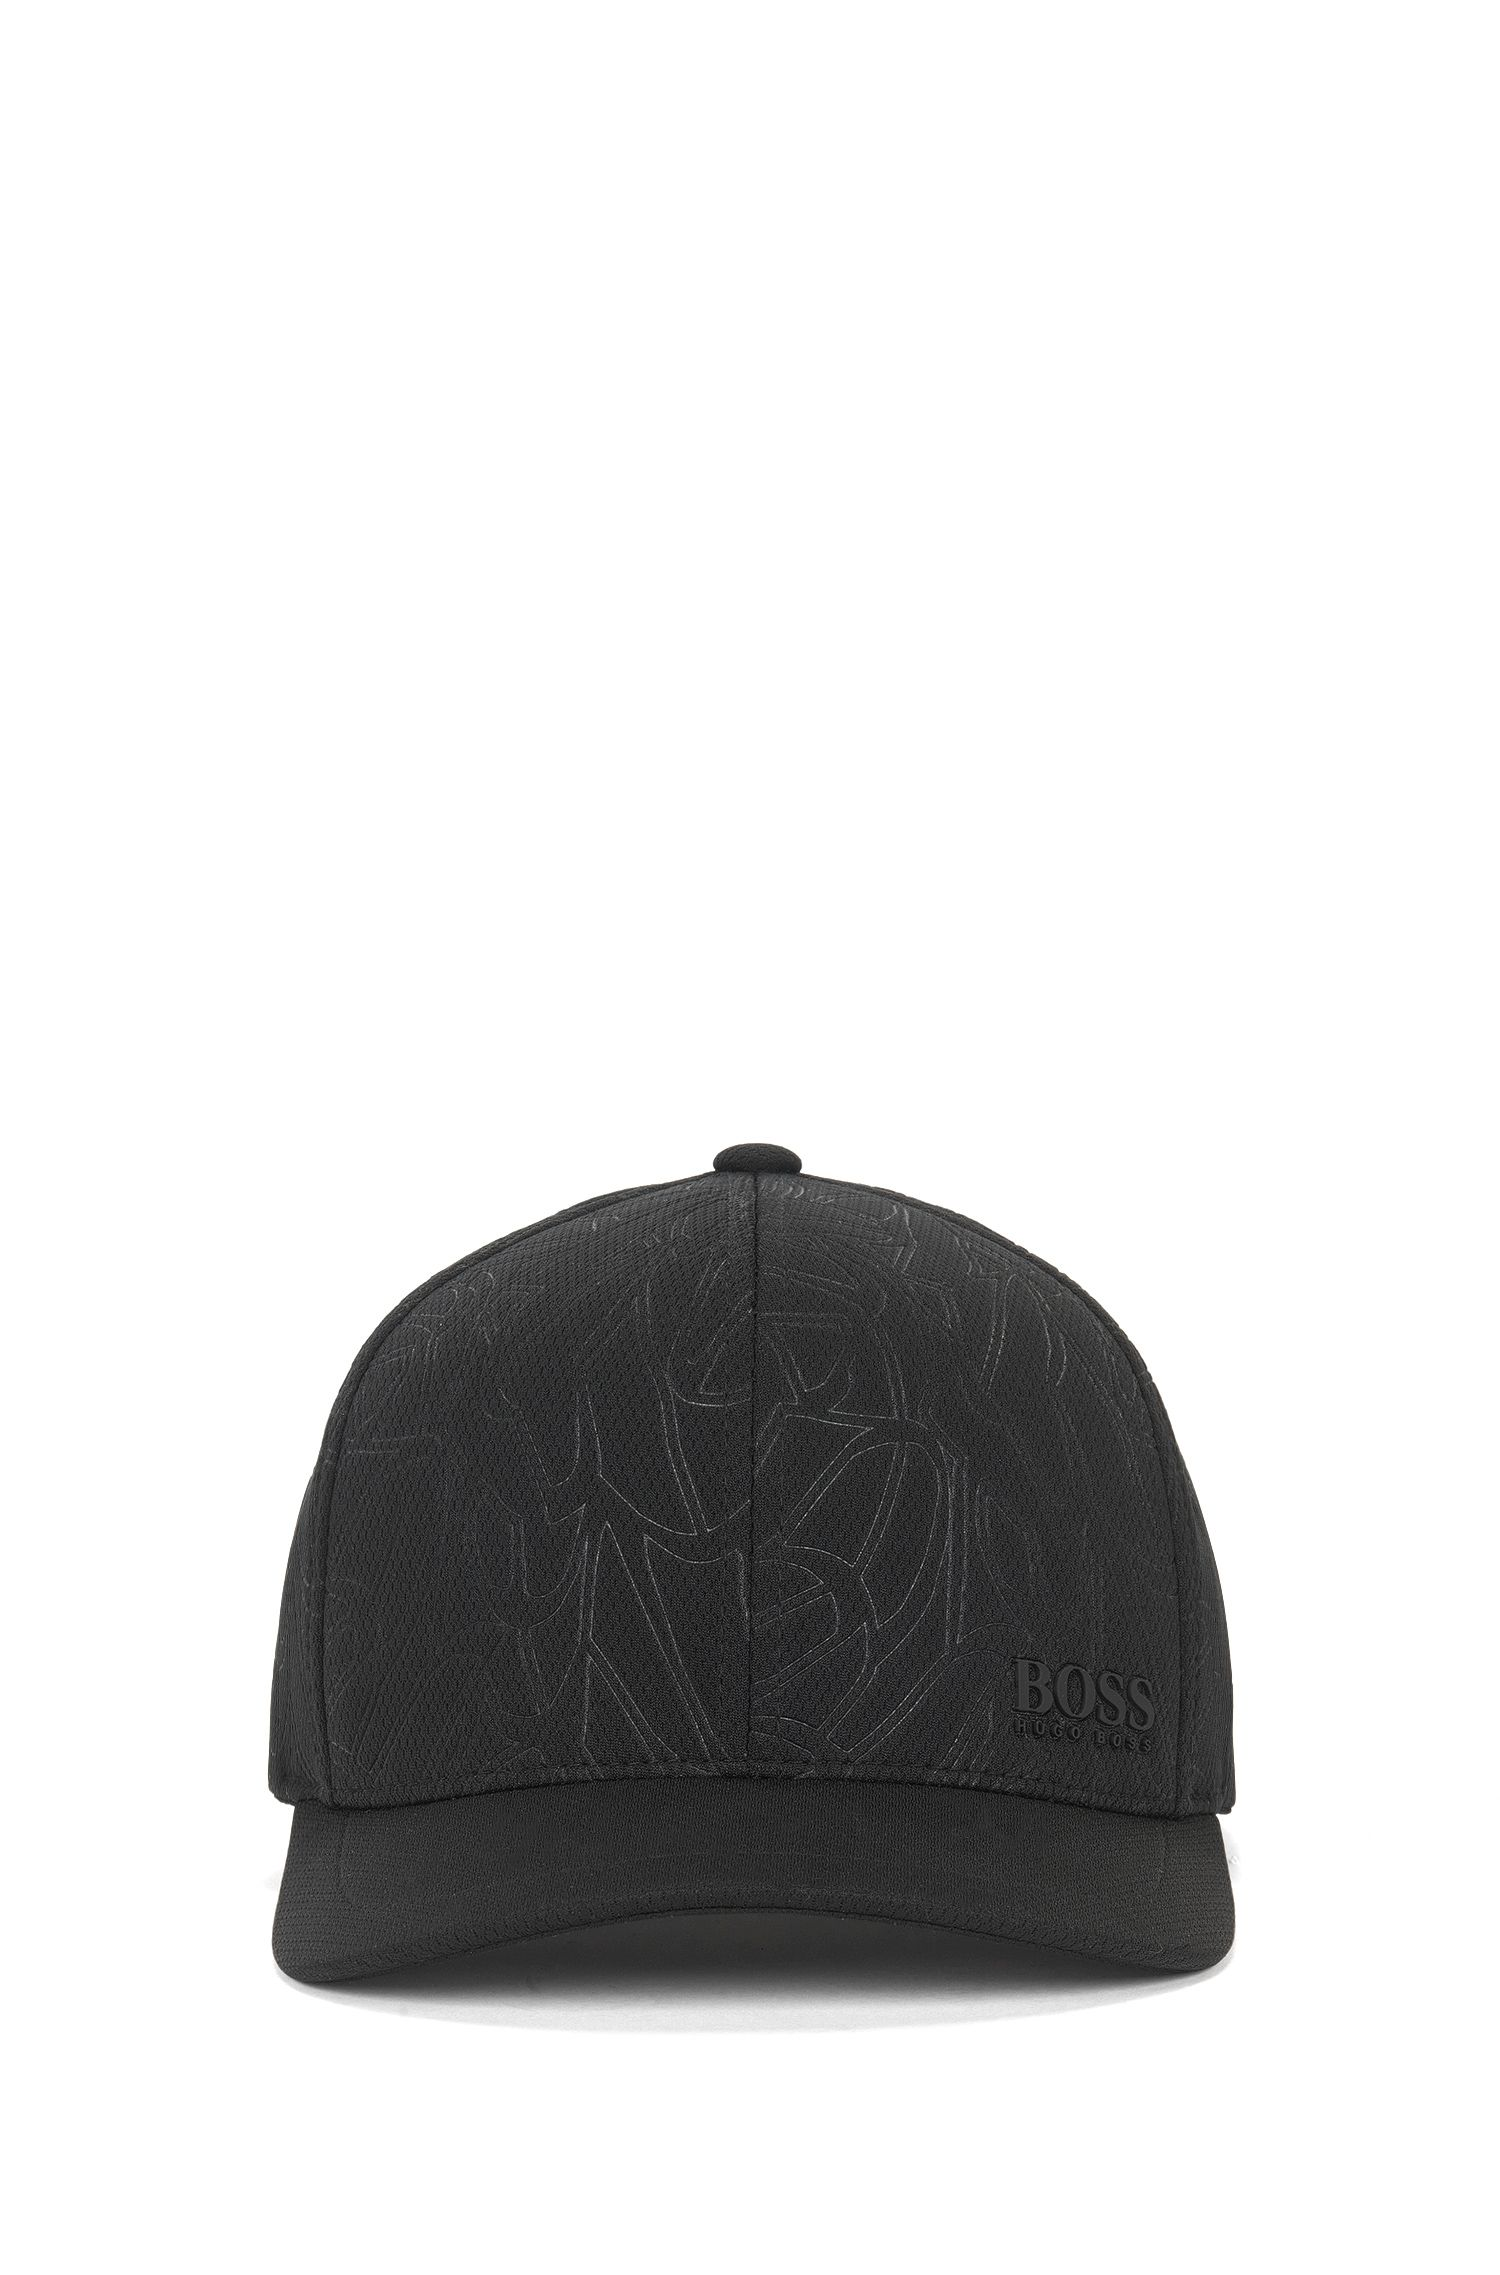 Honeycomb Woven Baseball Cap | Printcap, Black